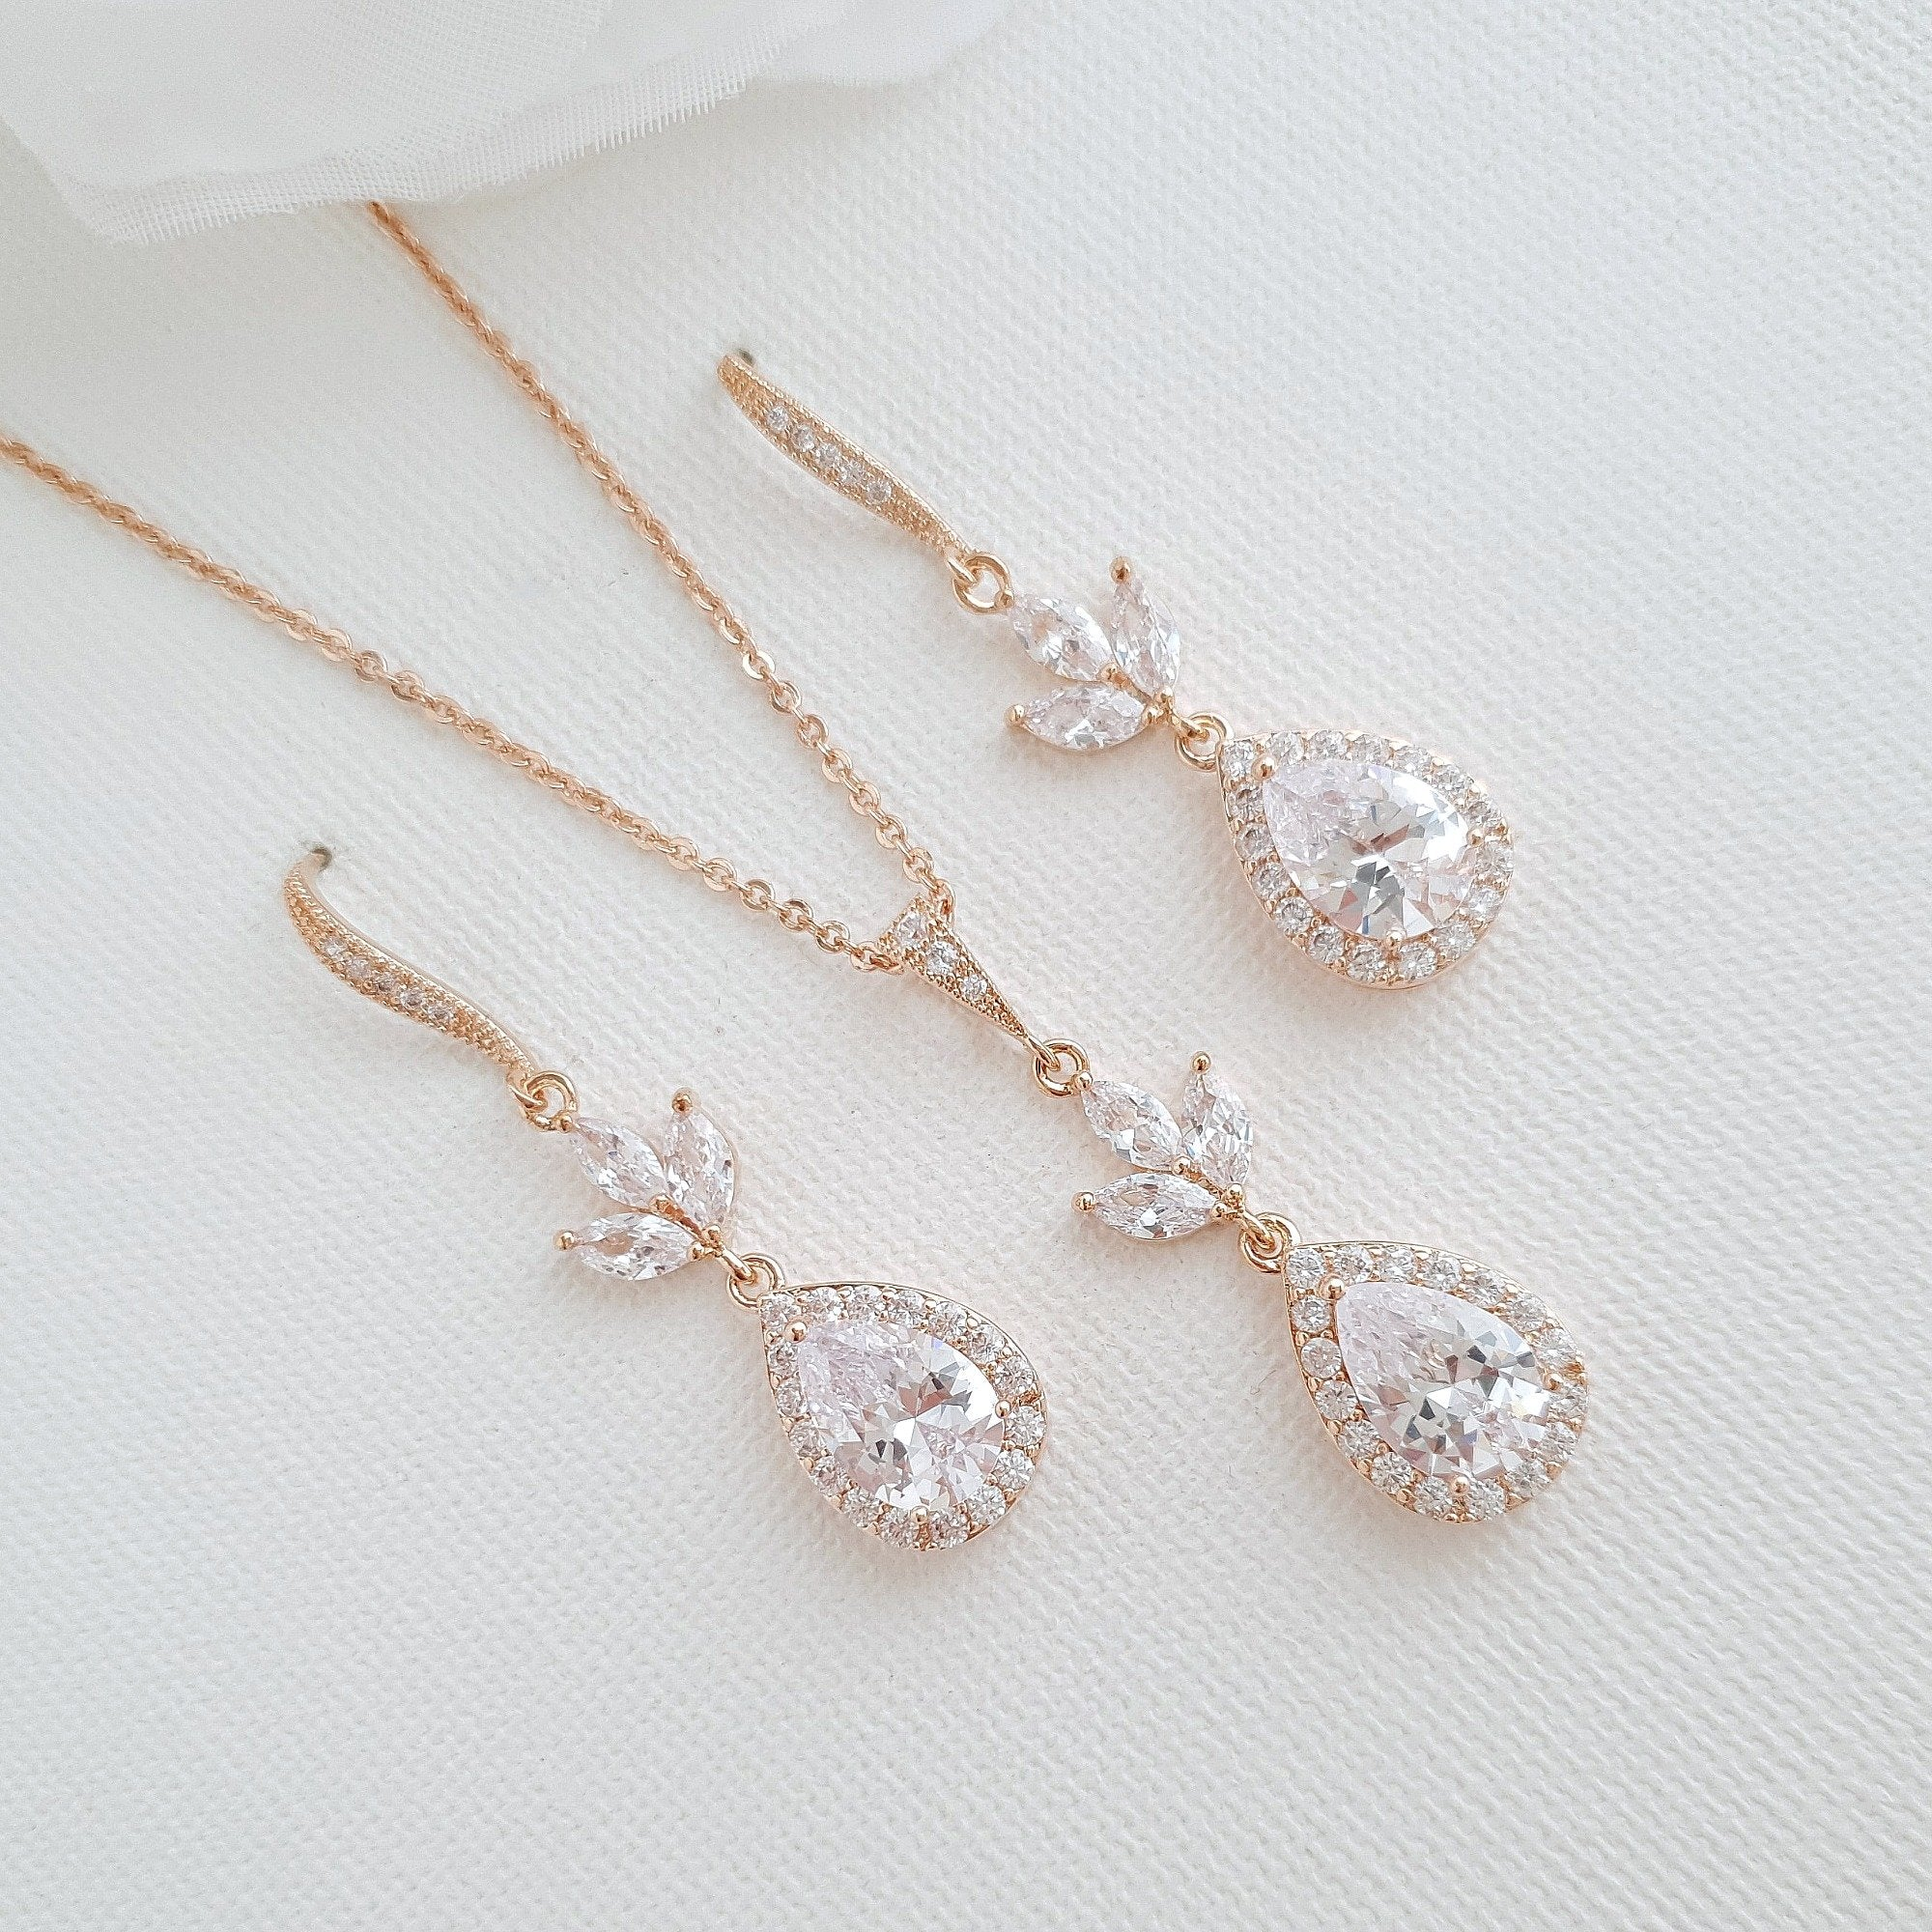 14K Yellow Gold Necklace and Earrings Set for Brides-Lotus - PoetryDesigns